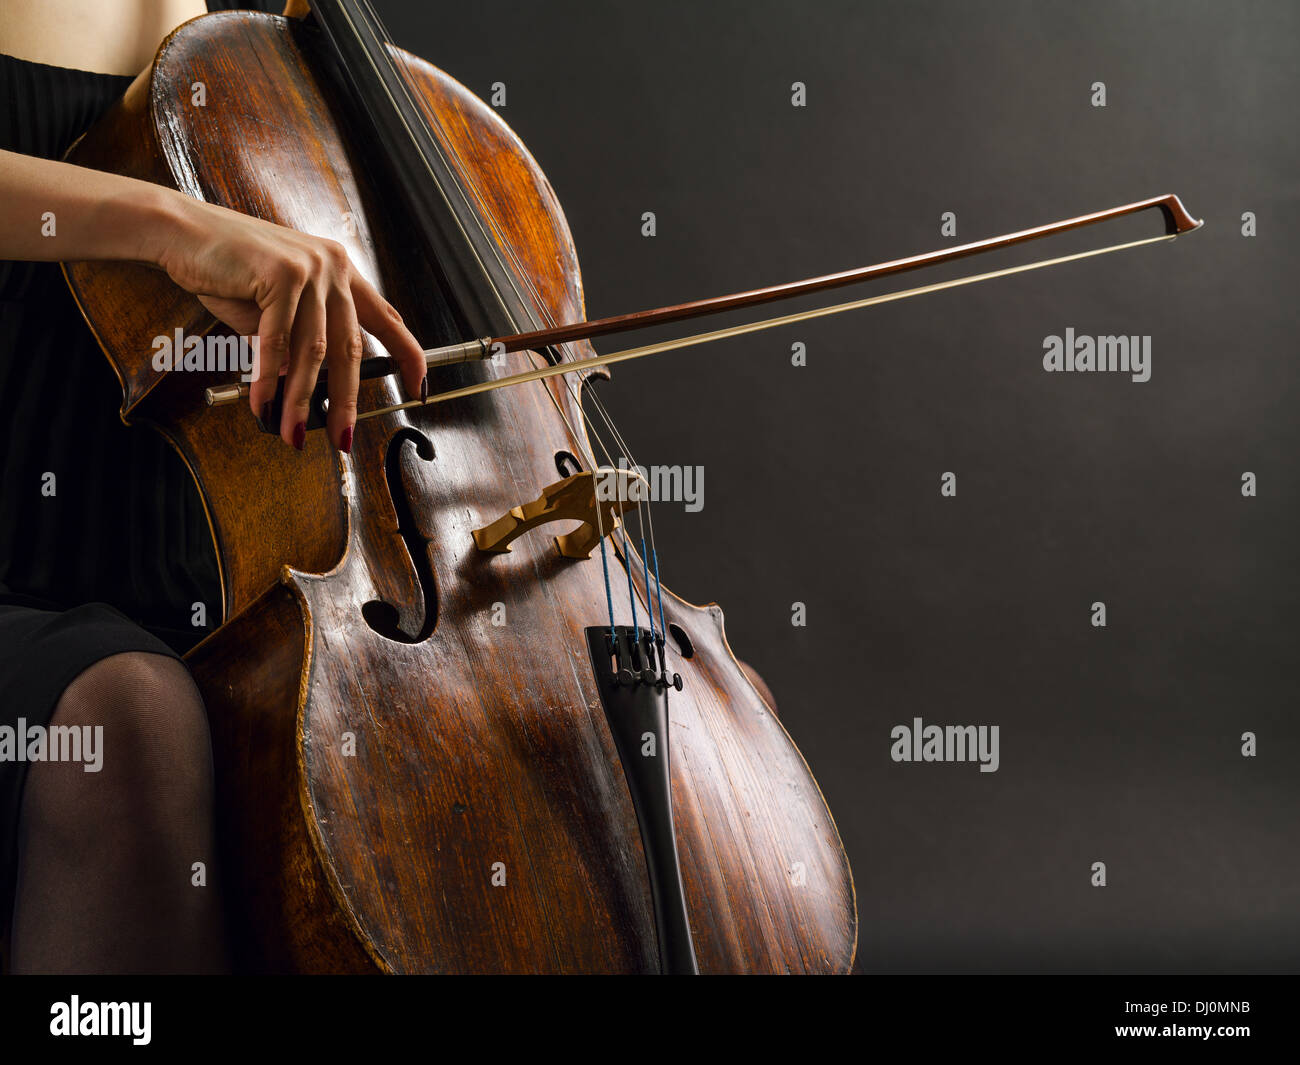 Photo of an unrecognizable female musician playing a cello. - Stock Image